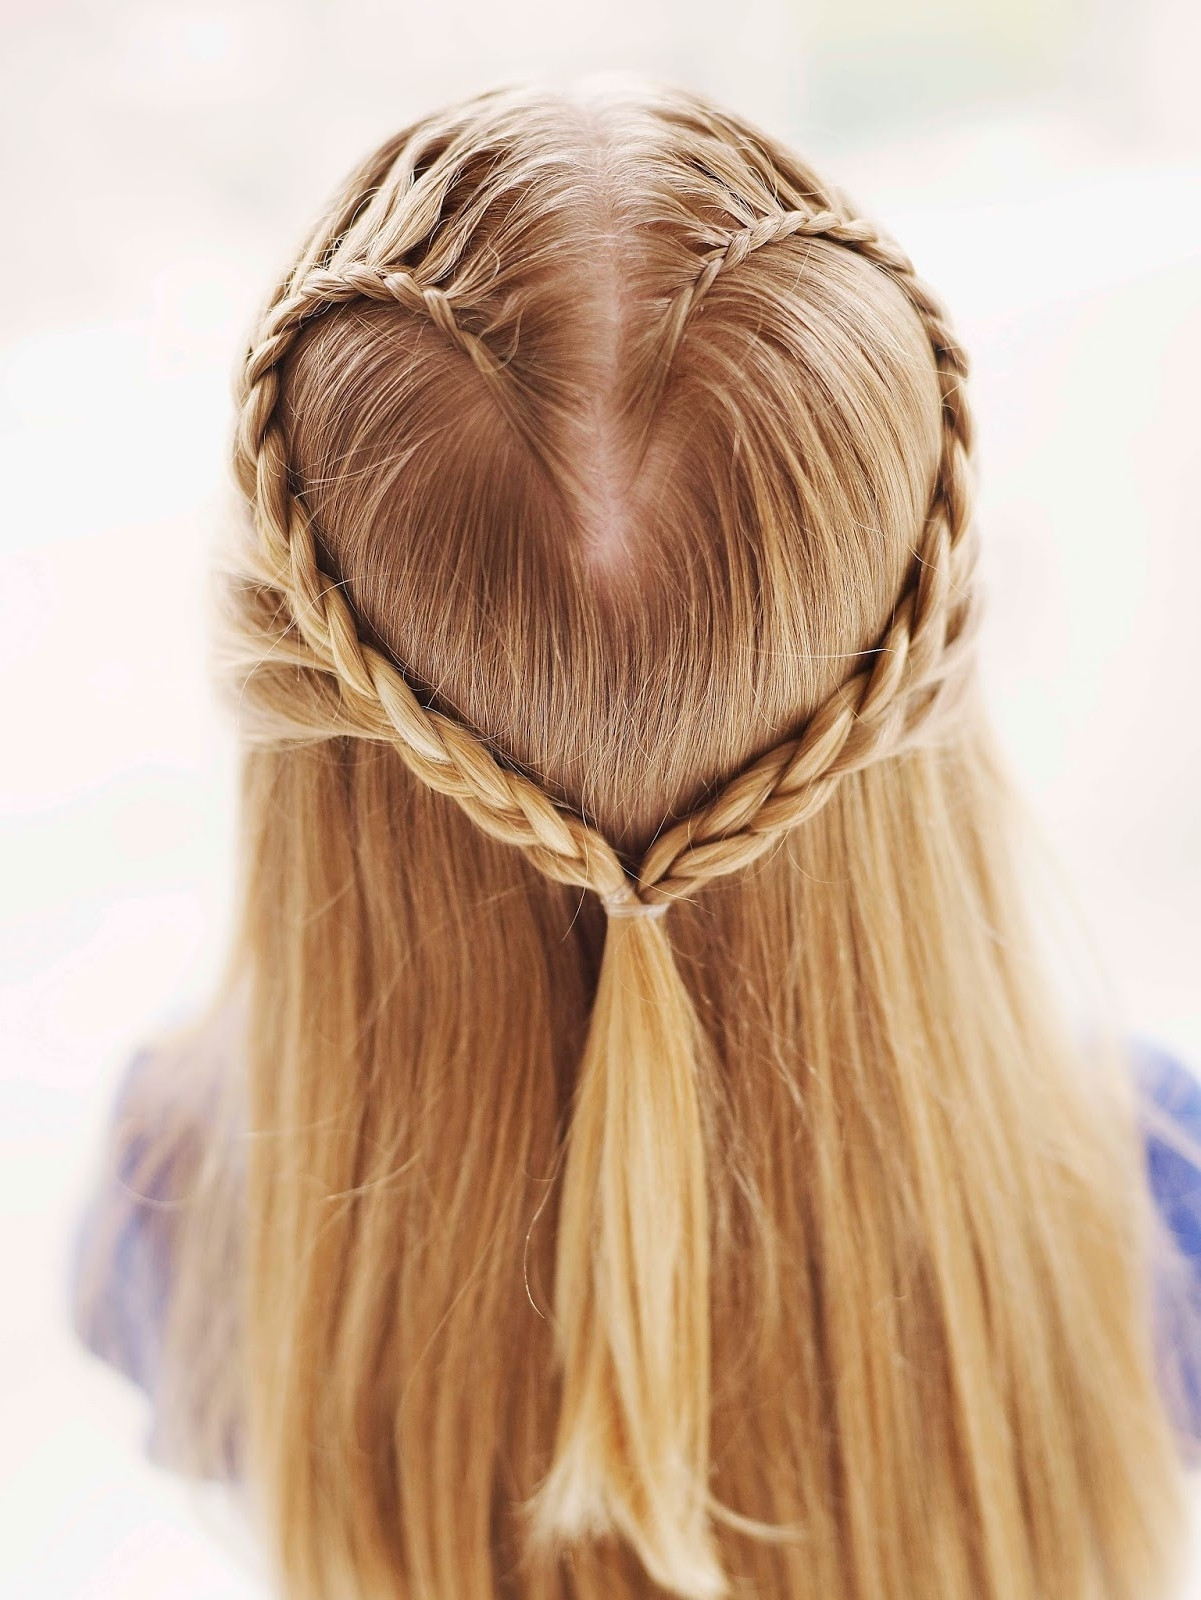 Braiding Hairstyles Tumblr  Tumblr Braids Hairstyles